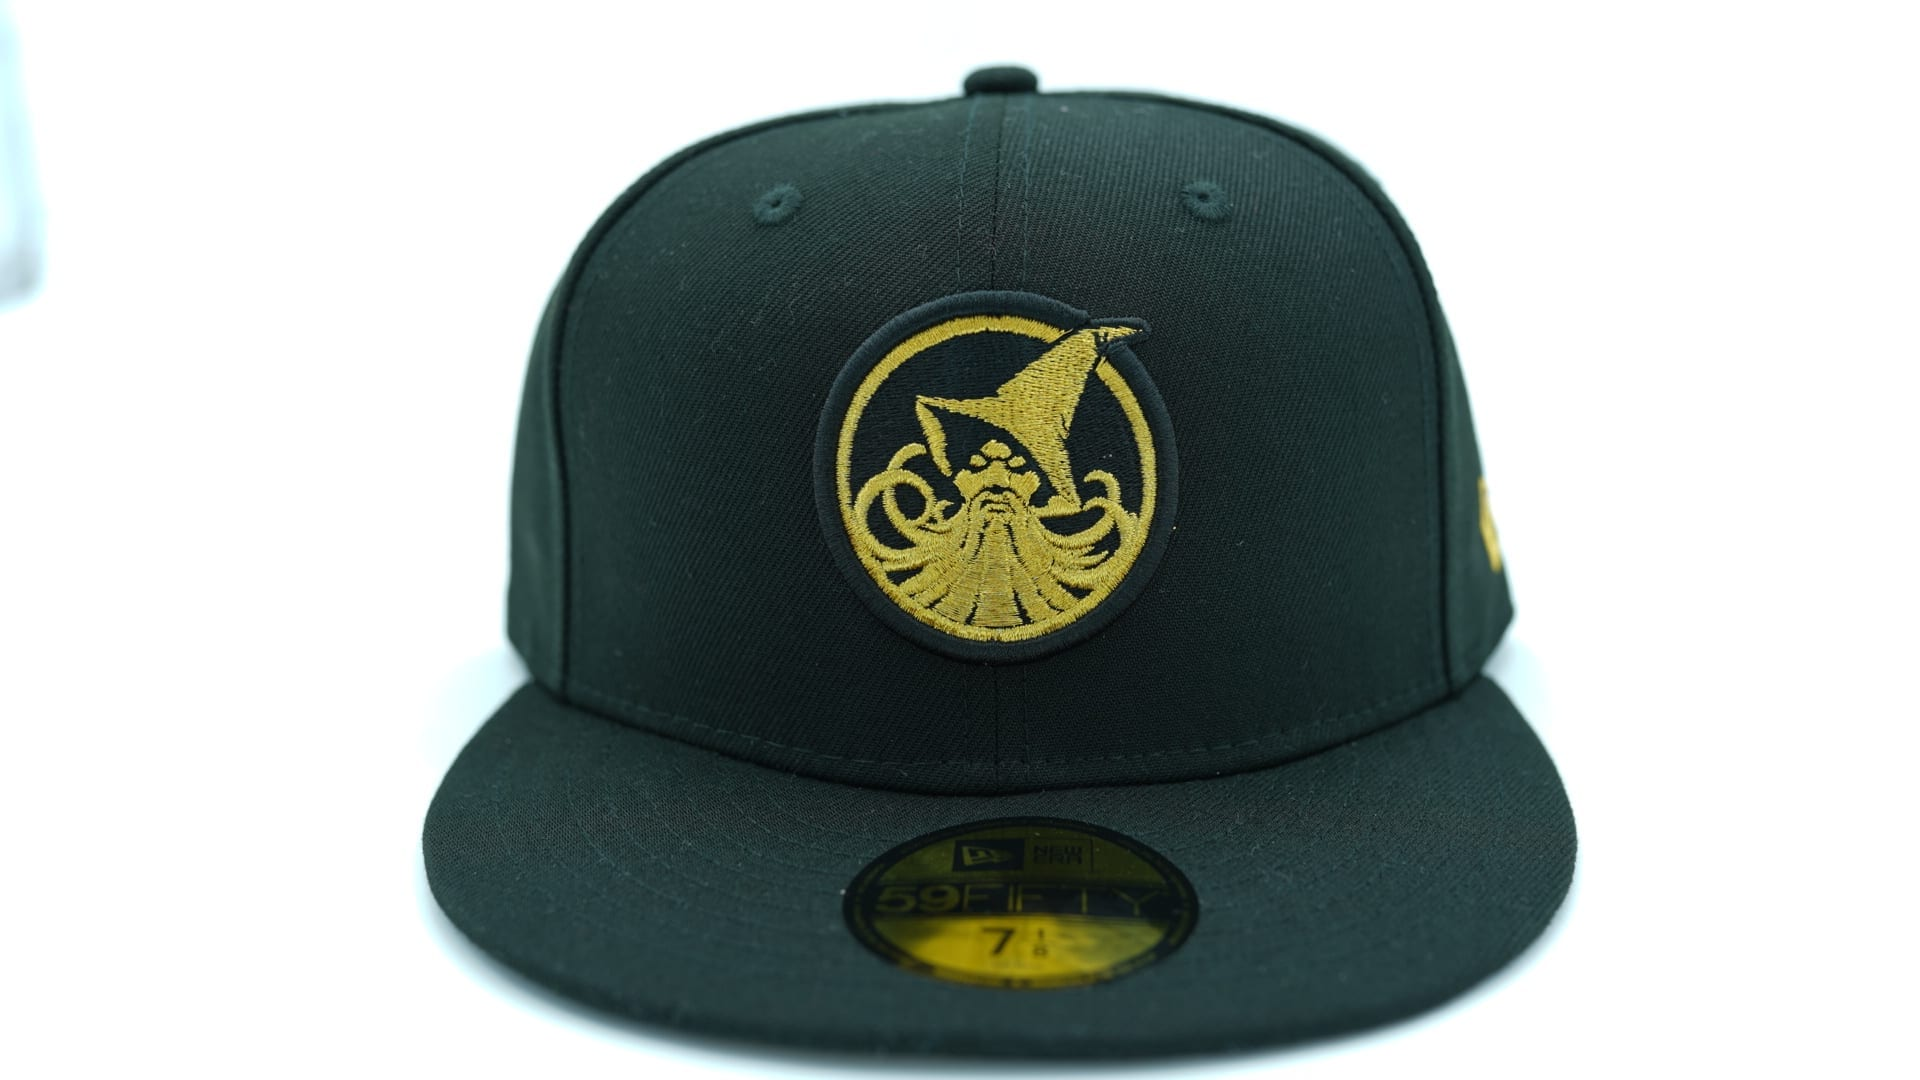 superior quality d11ab 34681 ... get new jersey devils 2 tone vintage 59fifty fitted cap by new era x nhl  0b704